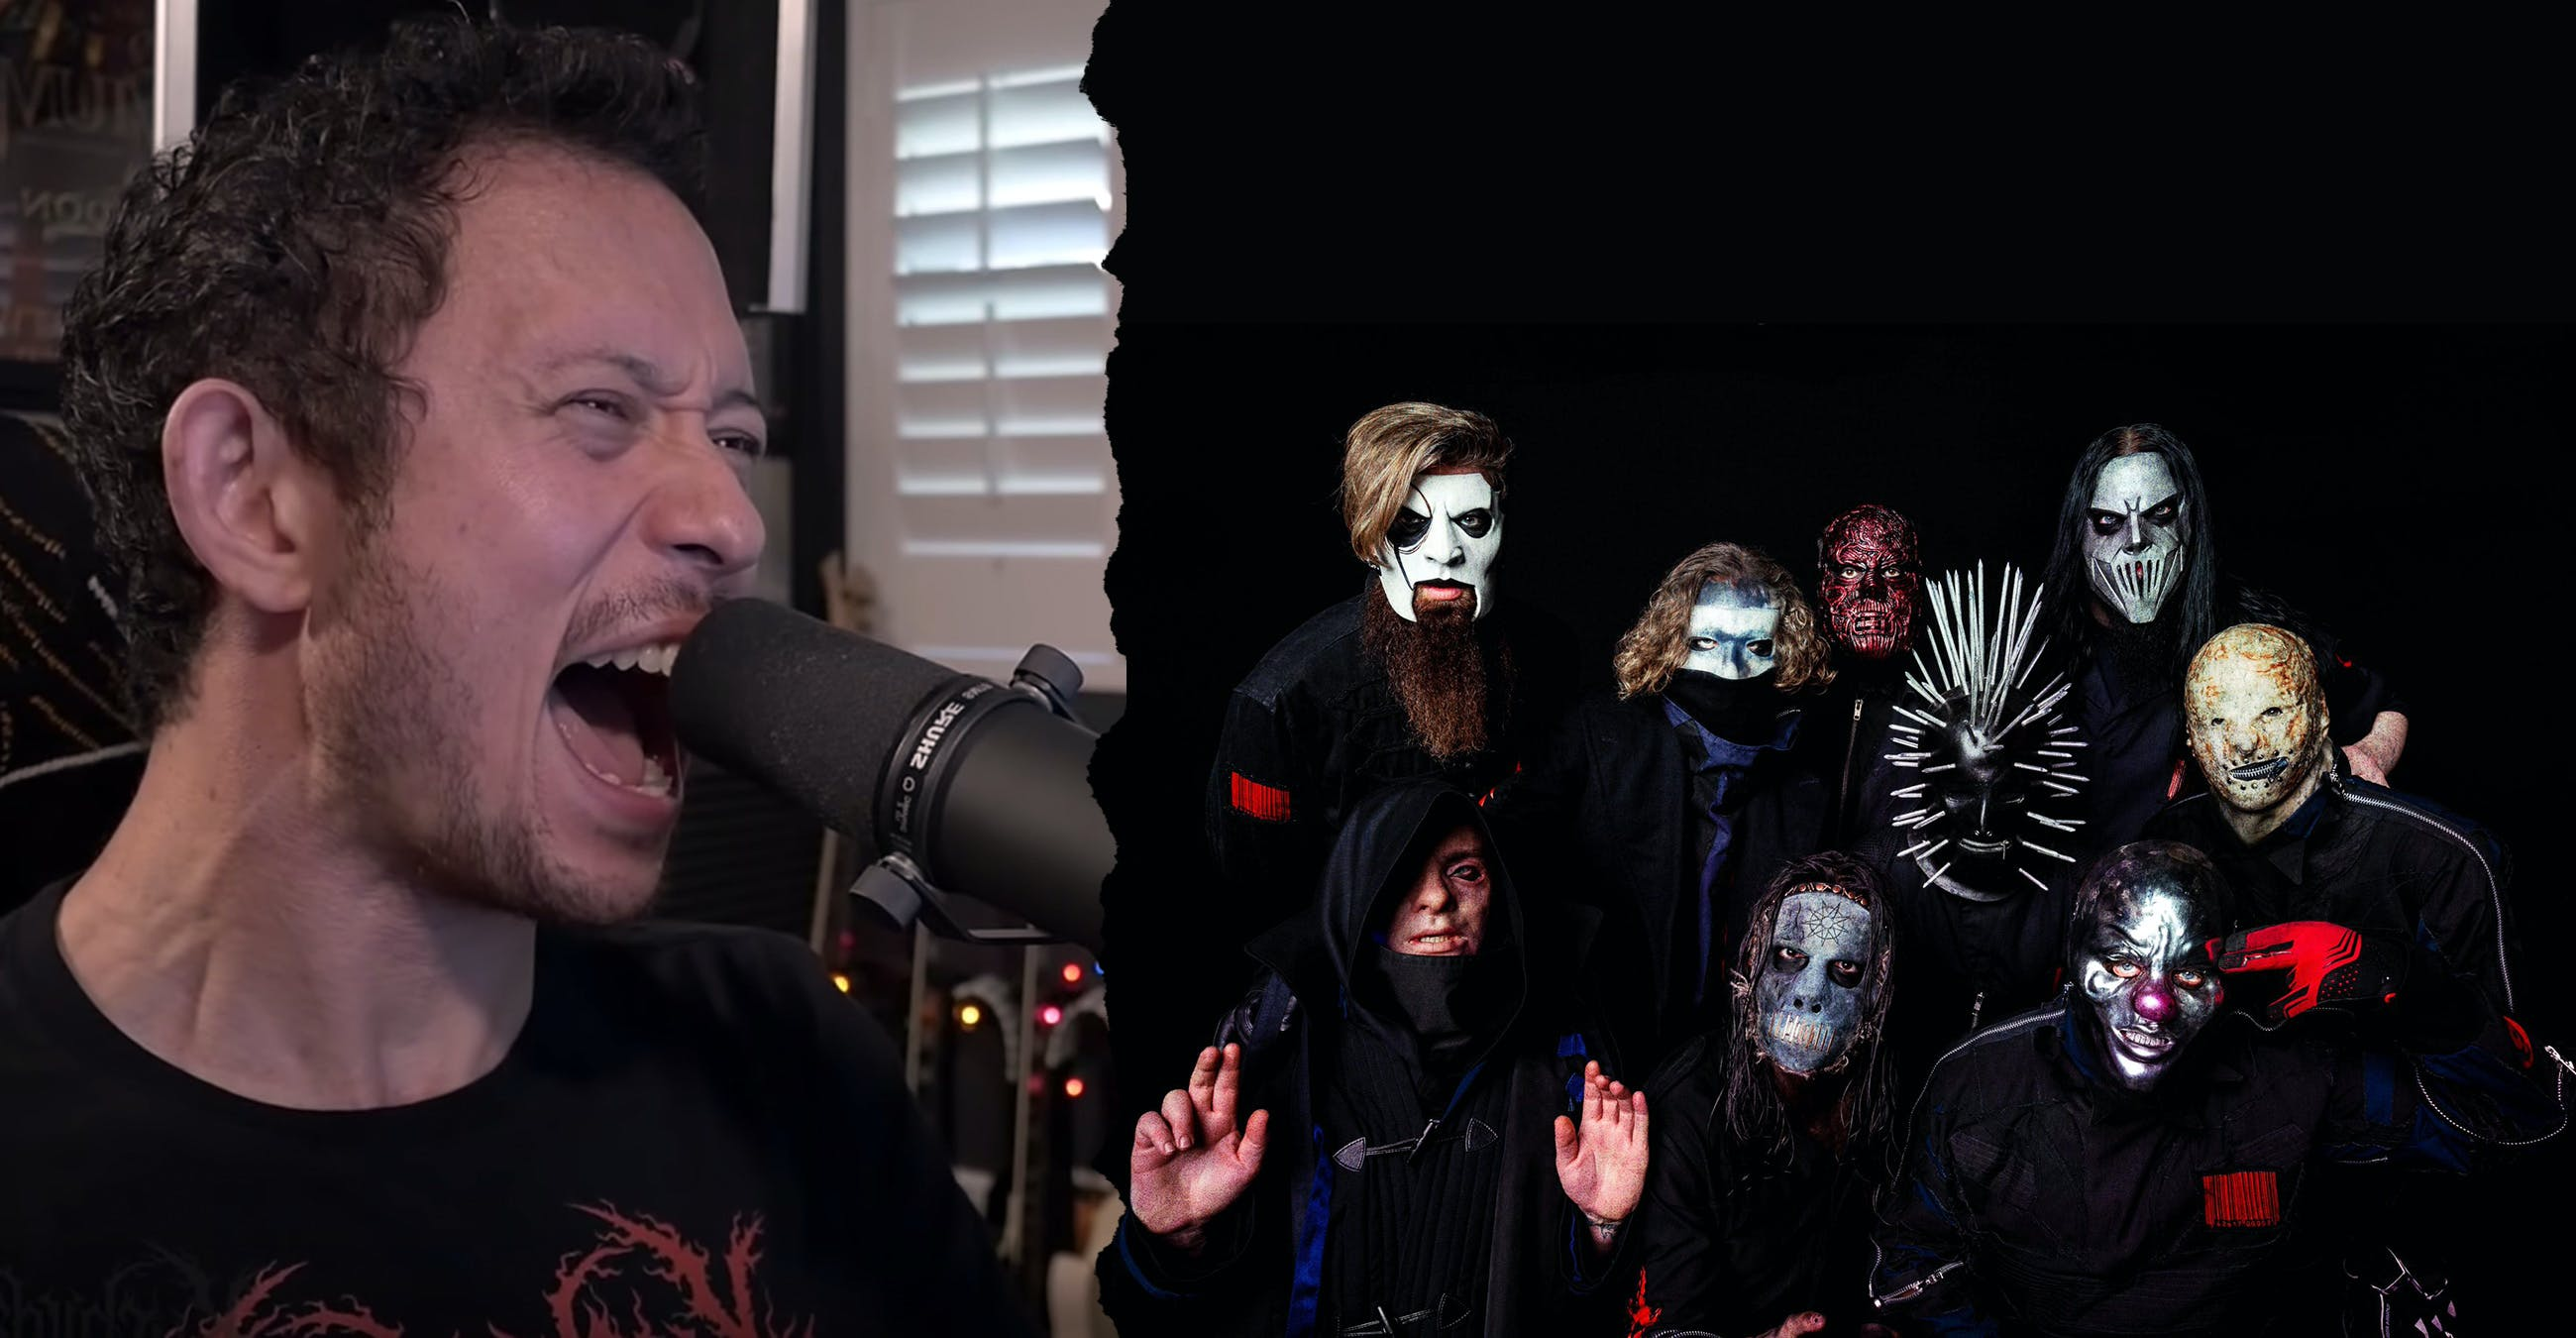 Watch Matt Heafy's Acoustic Cover of Slipknot's Unsainted